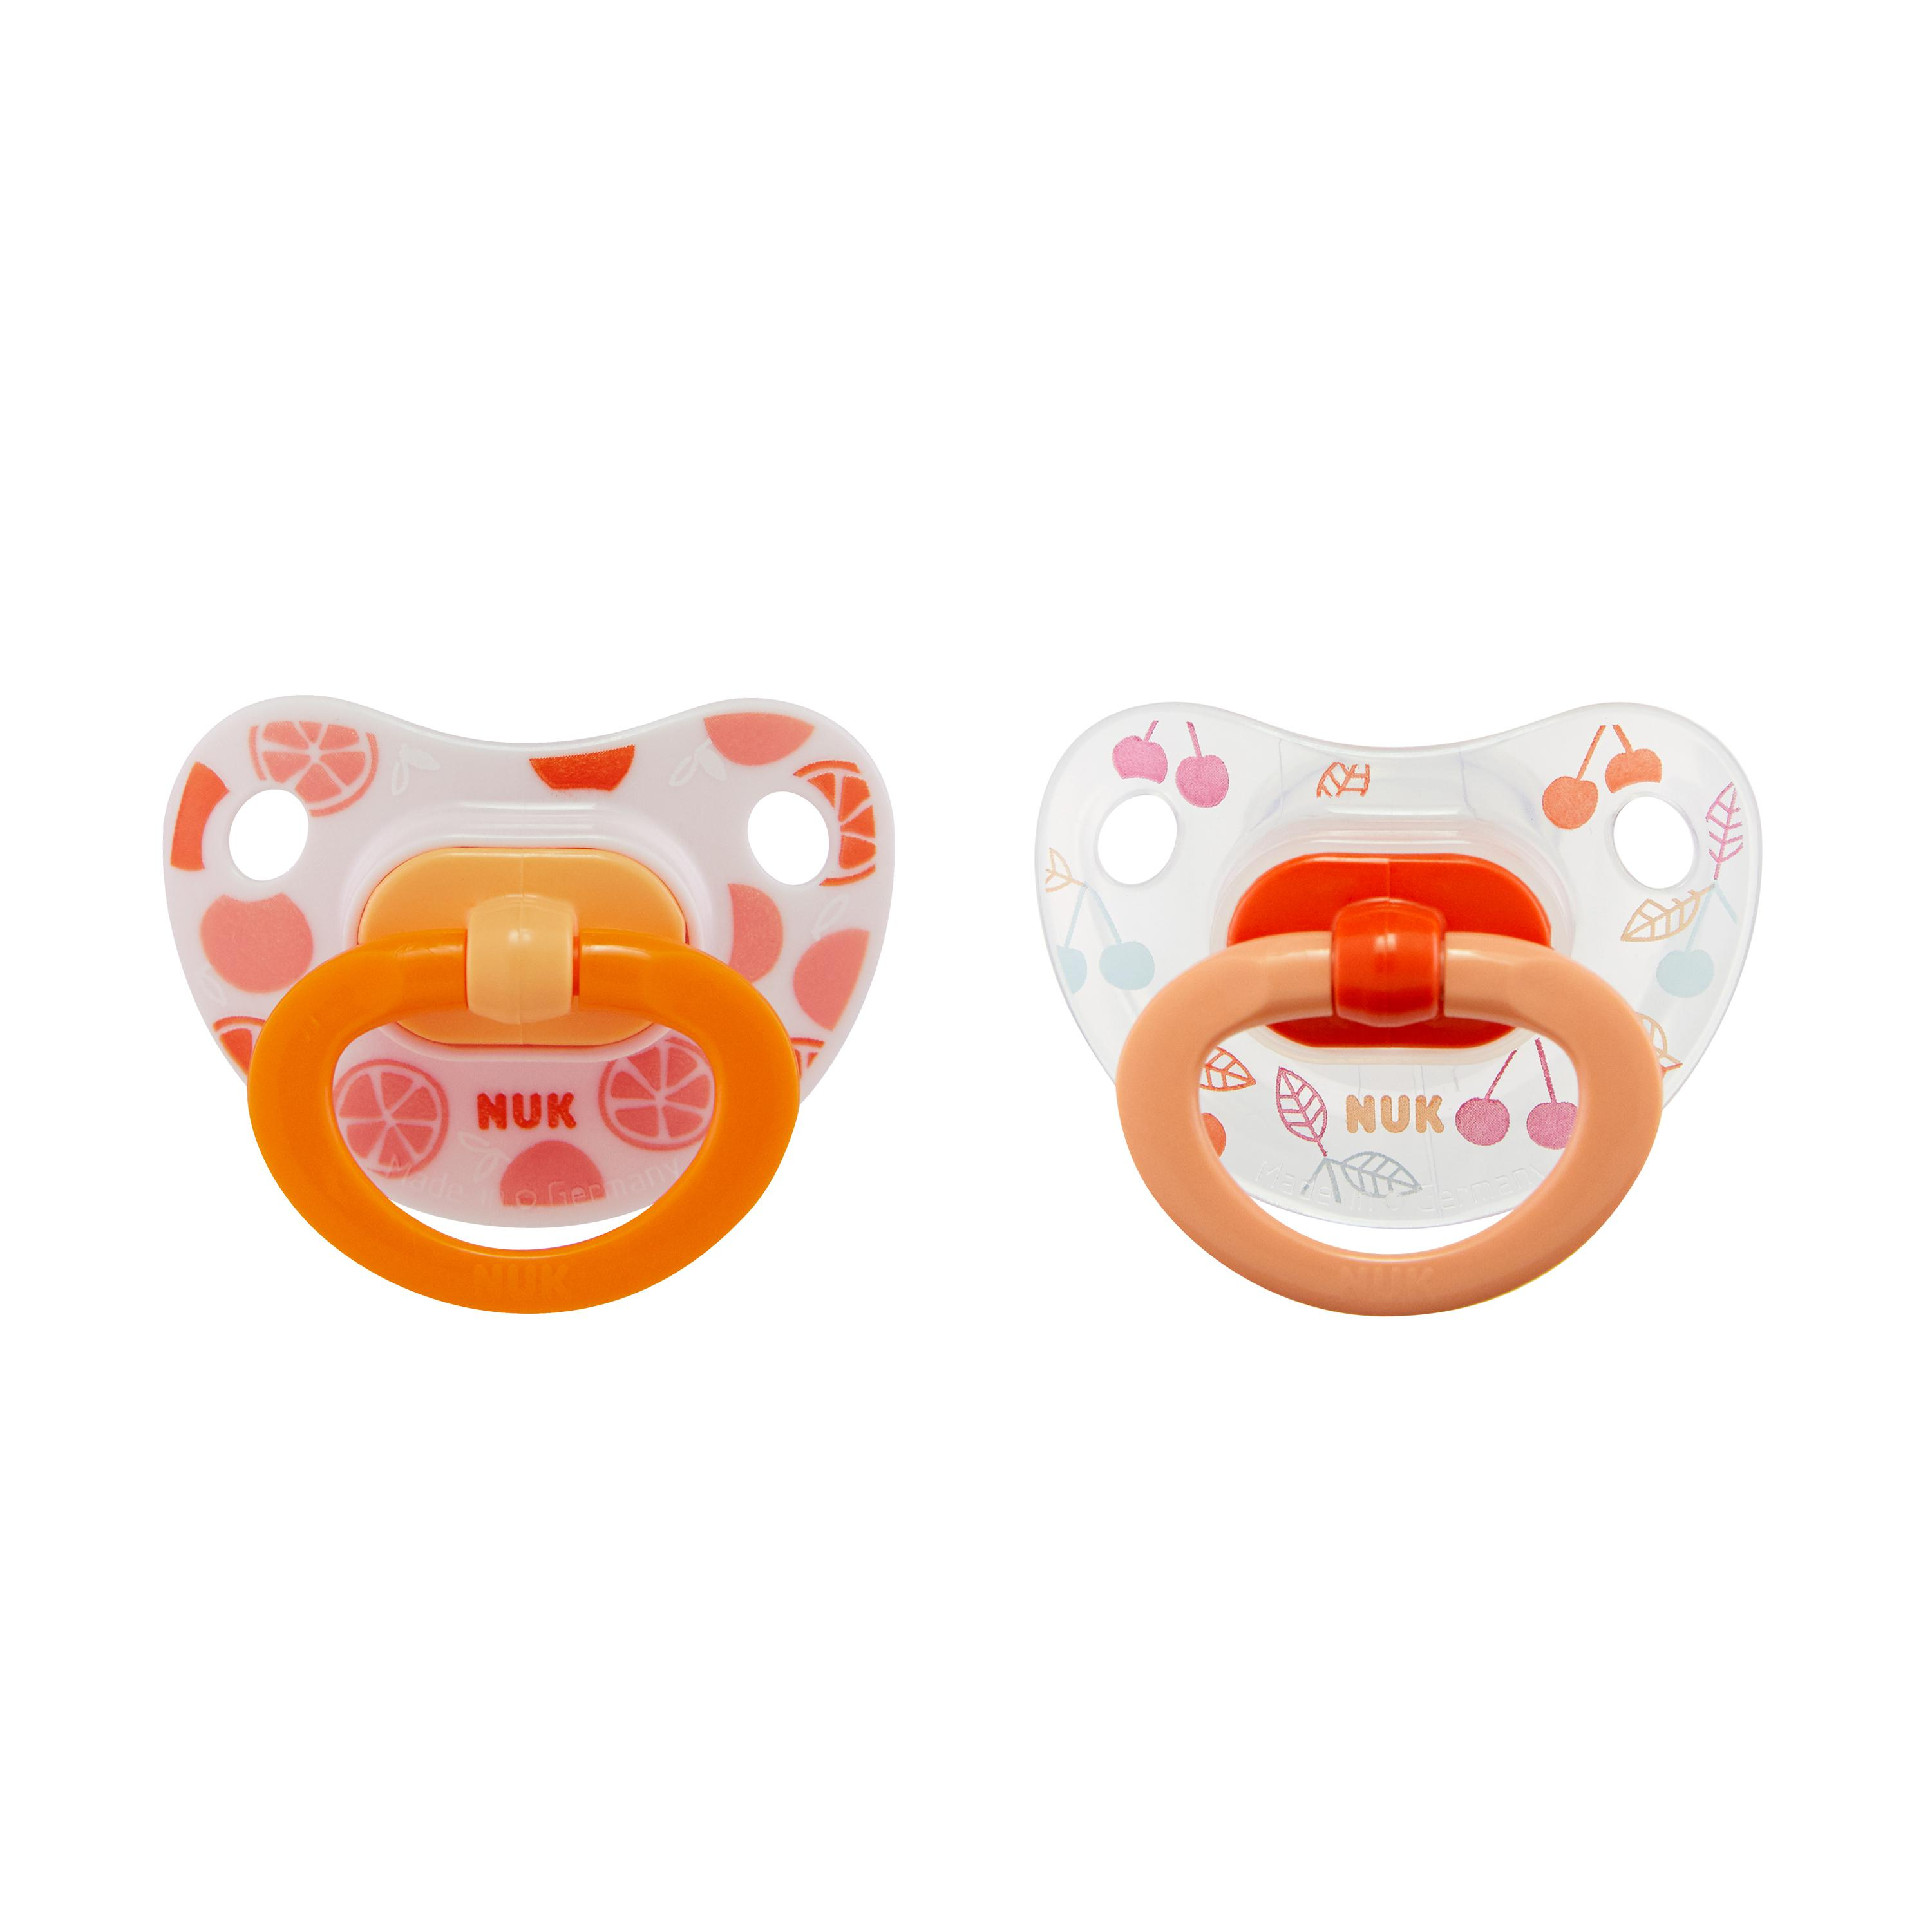 NUK® Sensitive™ Orthodontic Pacifiers, 6-18 Months, 2-Pack Product Image 6 of 7